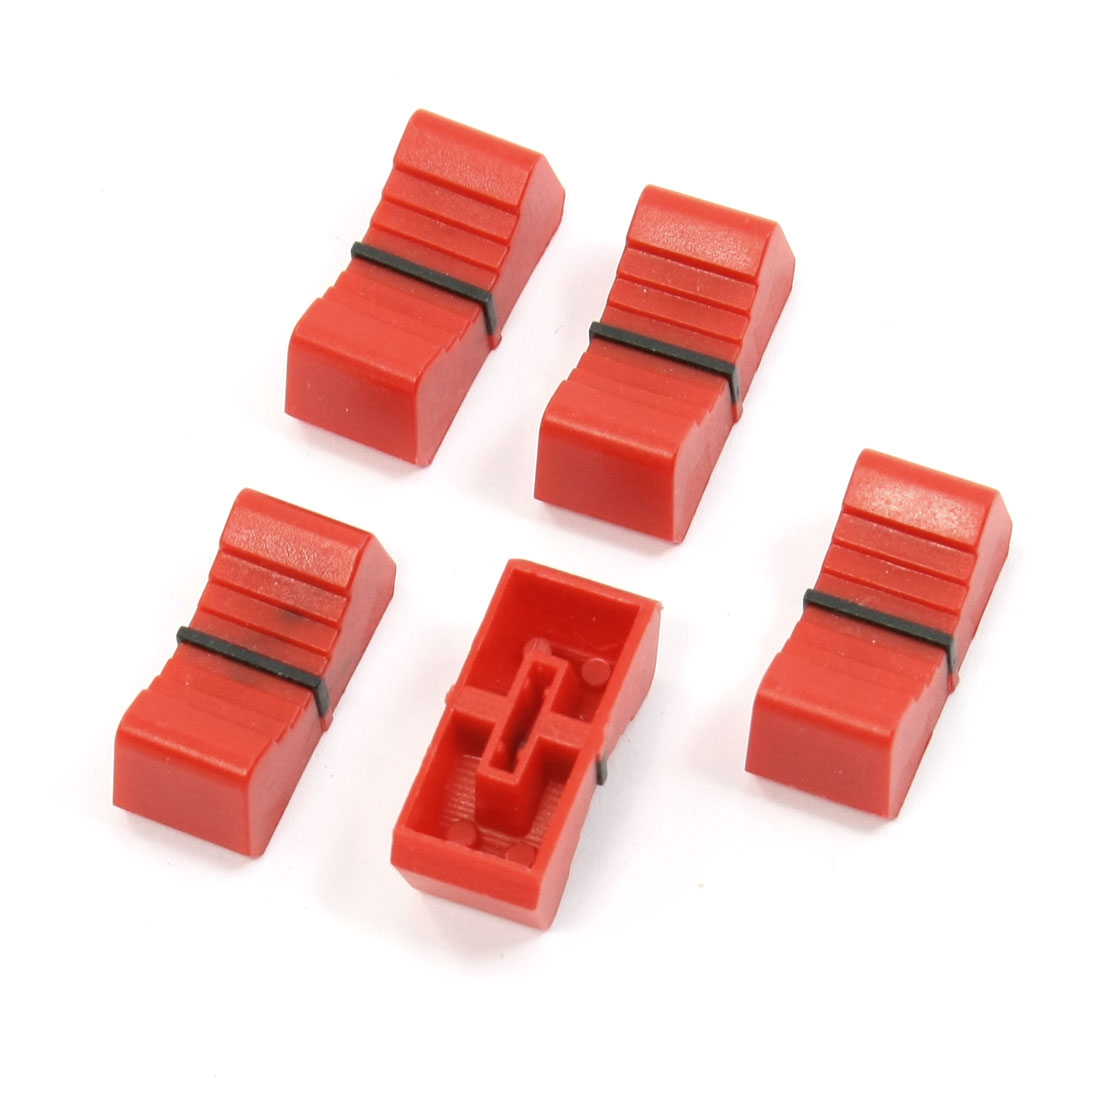 5pcs 8.5mmx2mm Push Fit Standard Fader Knobs for Mixed Slider